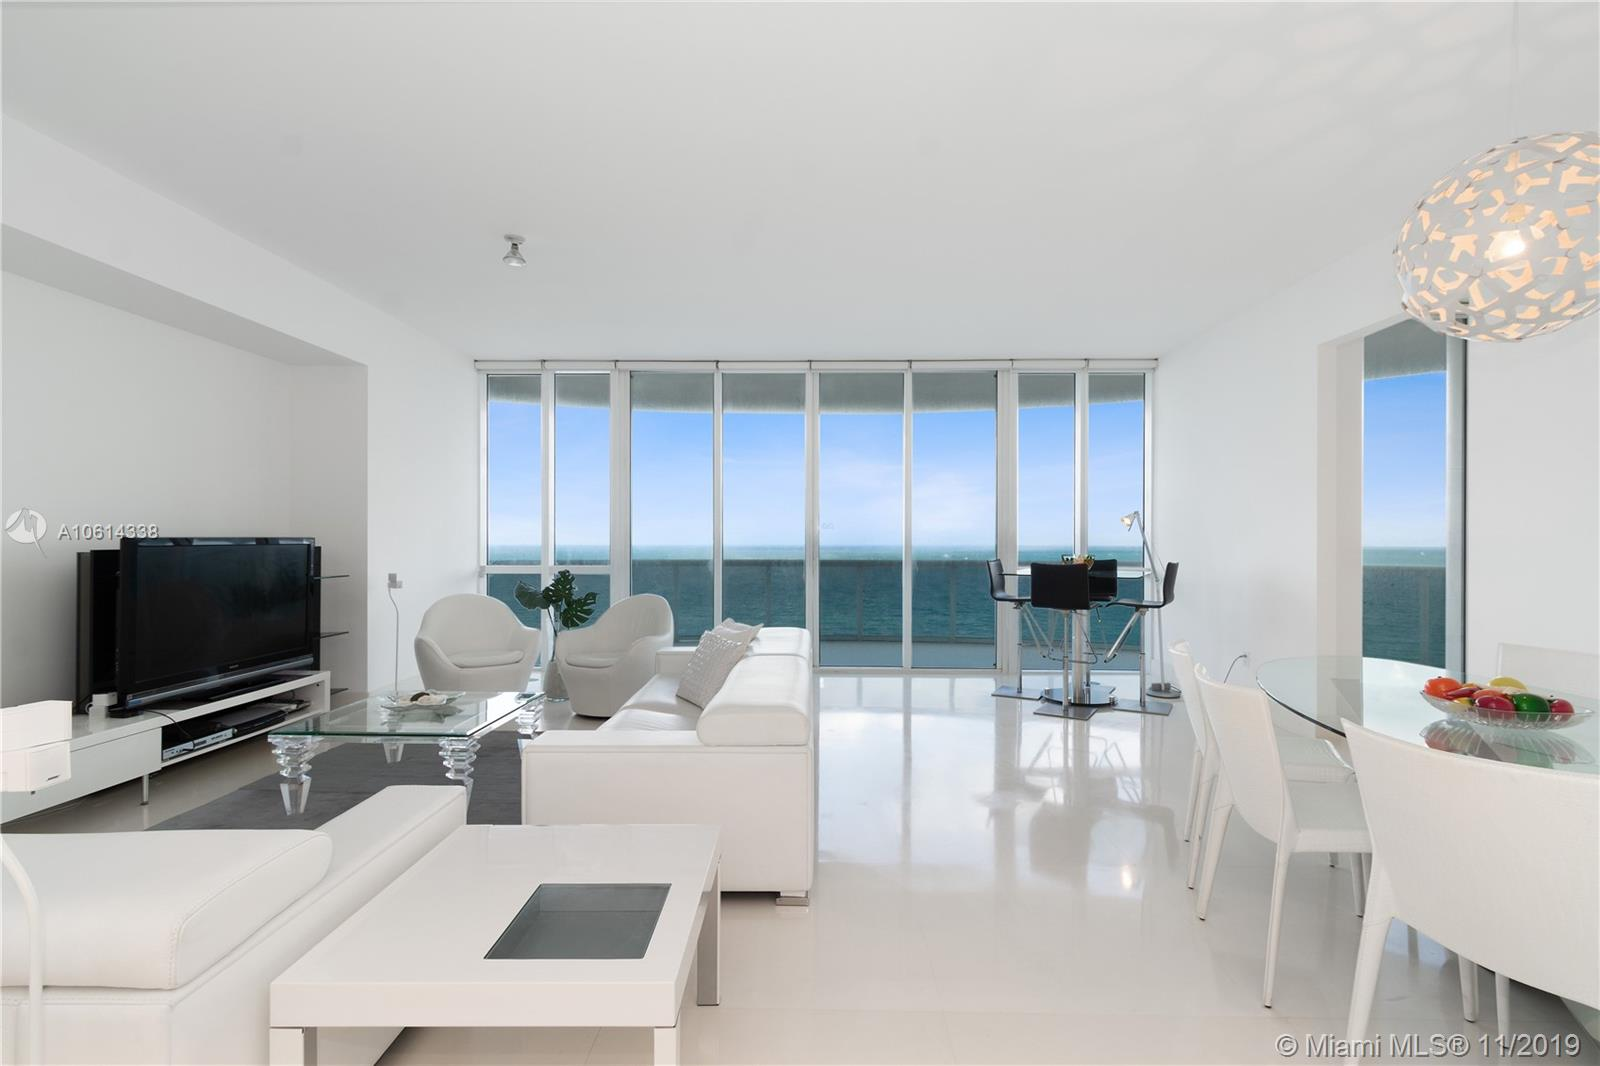 Best and largest coveted line in the Luxurious Trump Tower I with 5 star Amenities in the heart of Sunny Isles Beach. 11' clear ceilings & huge balcony with spectacular unobstructed panoramic views over 48' linear feet of direct oceanfront & Intracoastal views from every room. Magnificent 3 bd/ 3.5 ba residence is finished with Crema Marfil marble on floors & walls in bathrooms, modern Open Kitchen with floor to ceiling glass & terrace access, Sub Zero fridge, dual temperature wine cooler. Most furniture included, furniture direct from Italy! 2 parking spots in the best exclusive area. Amenities include 4 pools, spa, fitness yoga classes offered with licensed instructors, business center, beach & room service, gourmet beachfront restaurant.  Across from Intracoastal Park!